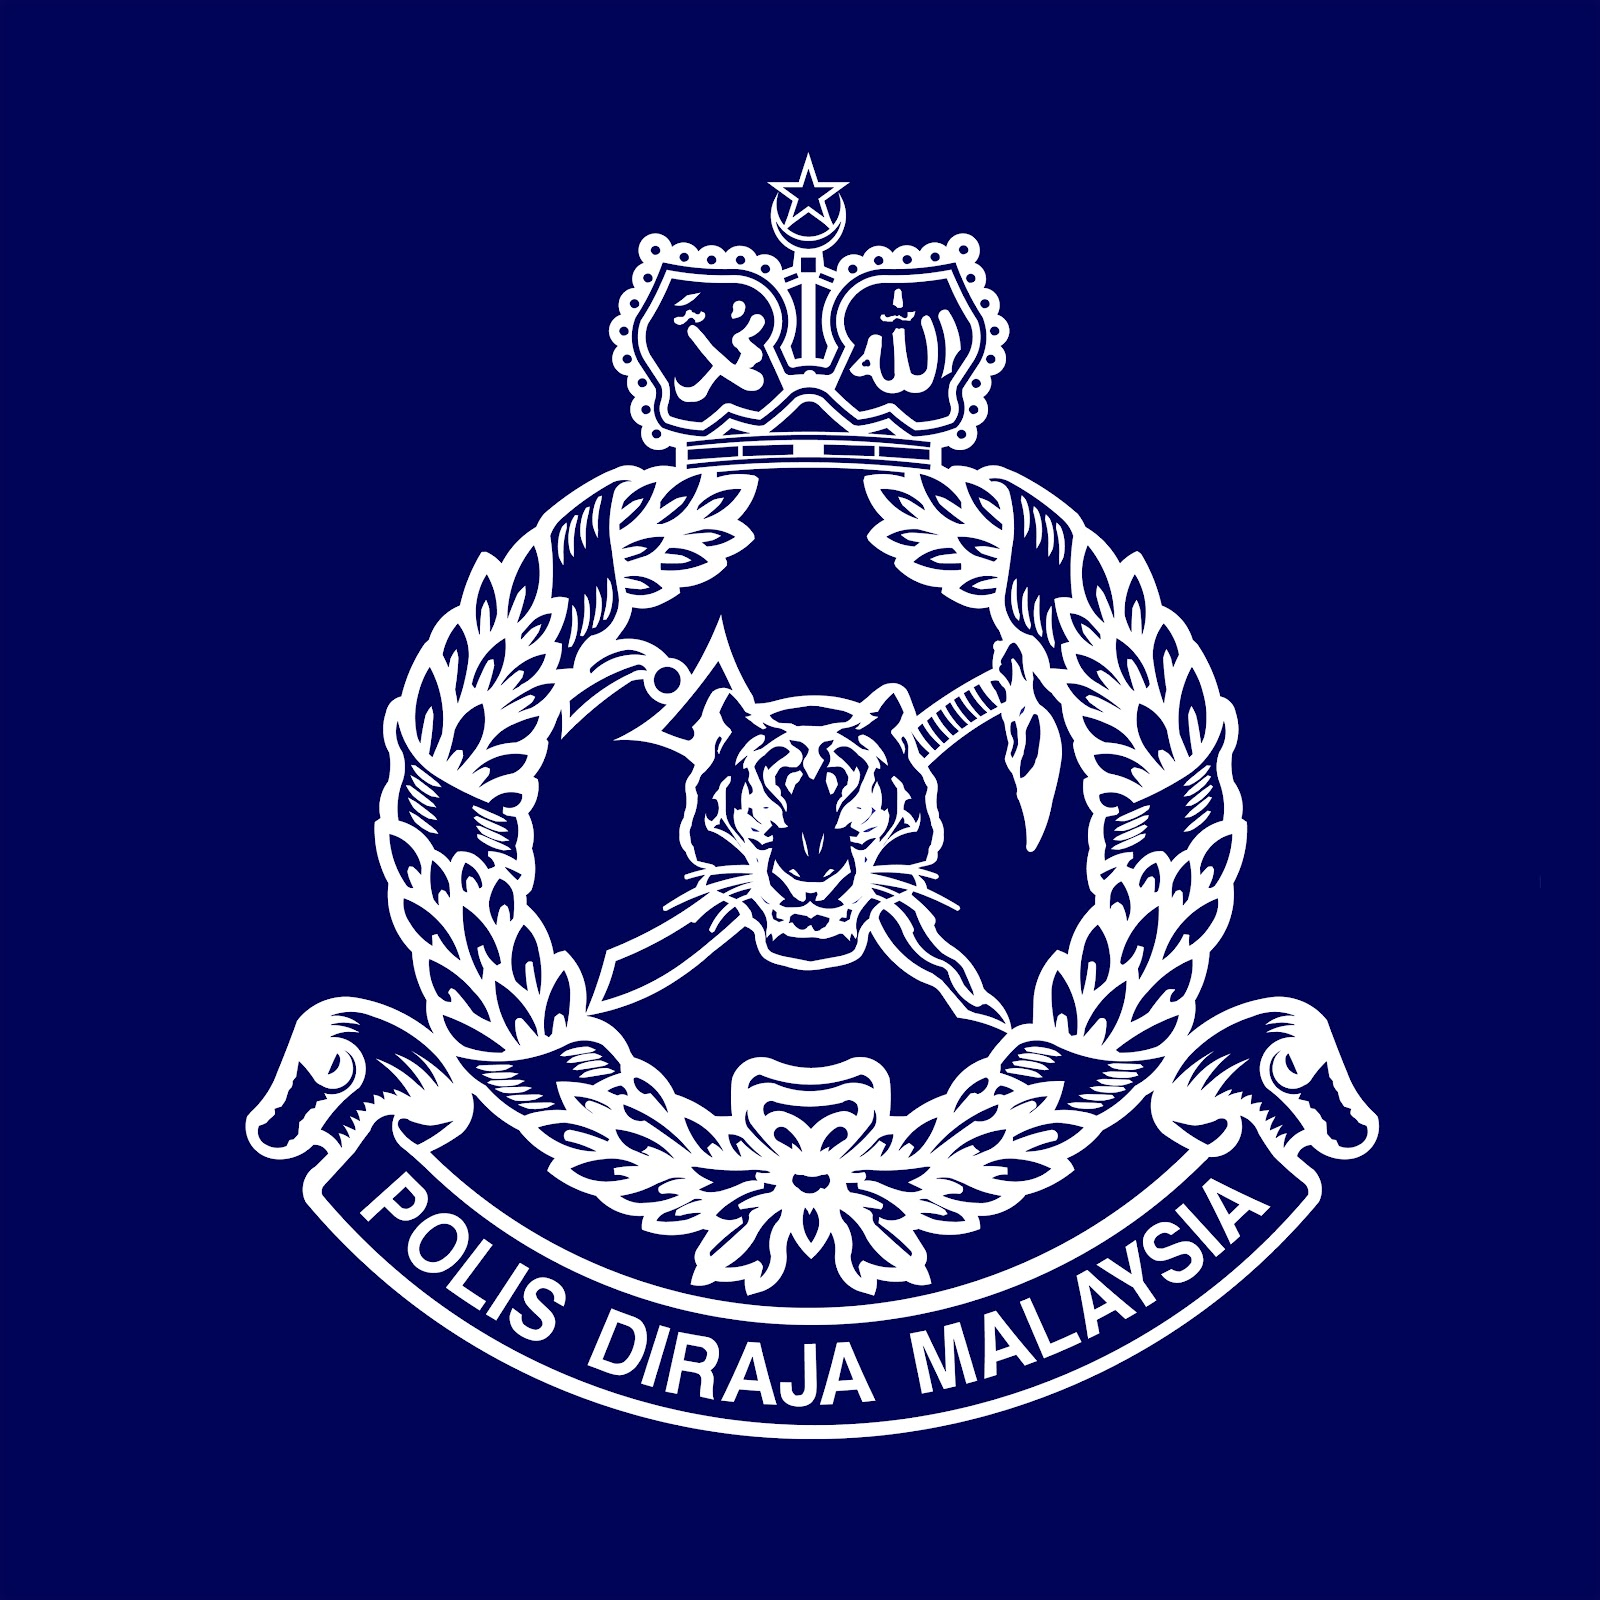 PDRM-logo-Training-Double-Effect-House